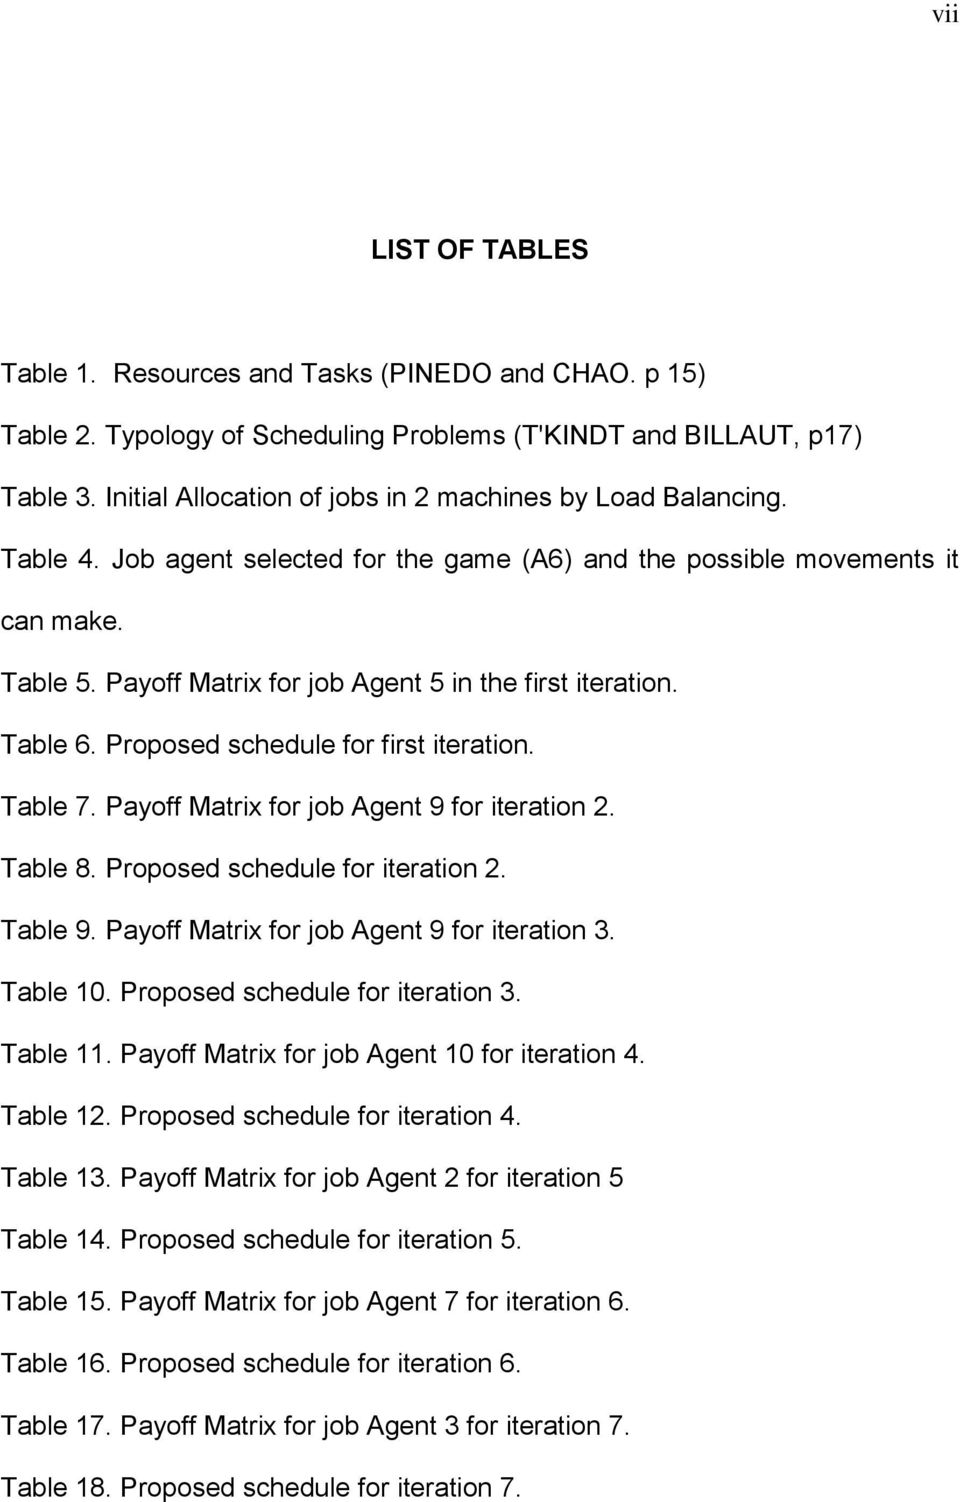 Payoff Matrx for job Agent 9 for teraton 2. Table 8. Proposed schedule for teraton 2. Table 9. Payoff Matrx for job Agent 9 for teraton 3. Table 10. Proposed schedule for teraton 3. Table 11.